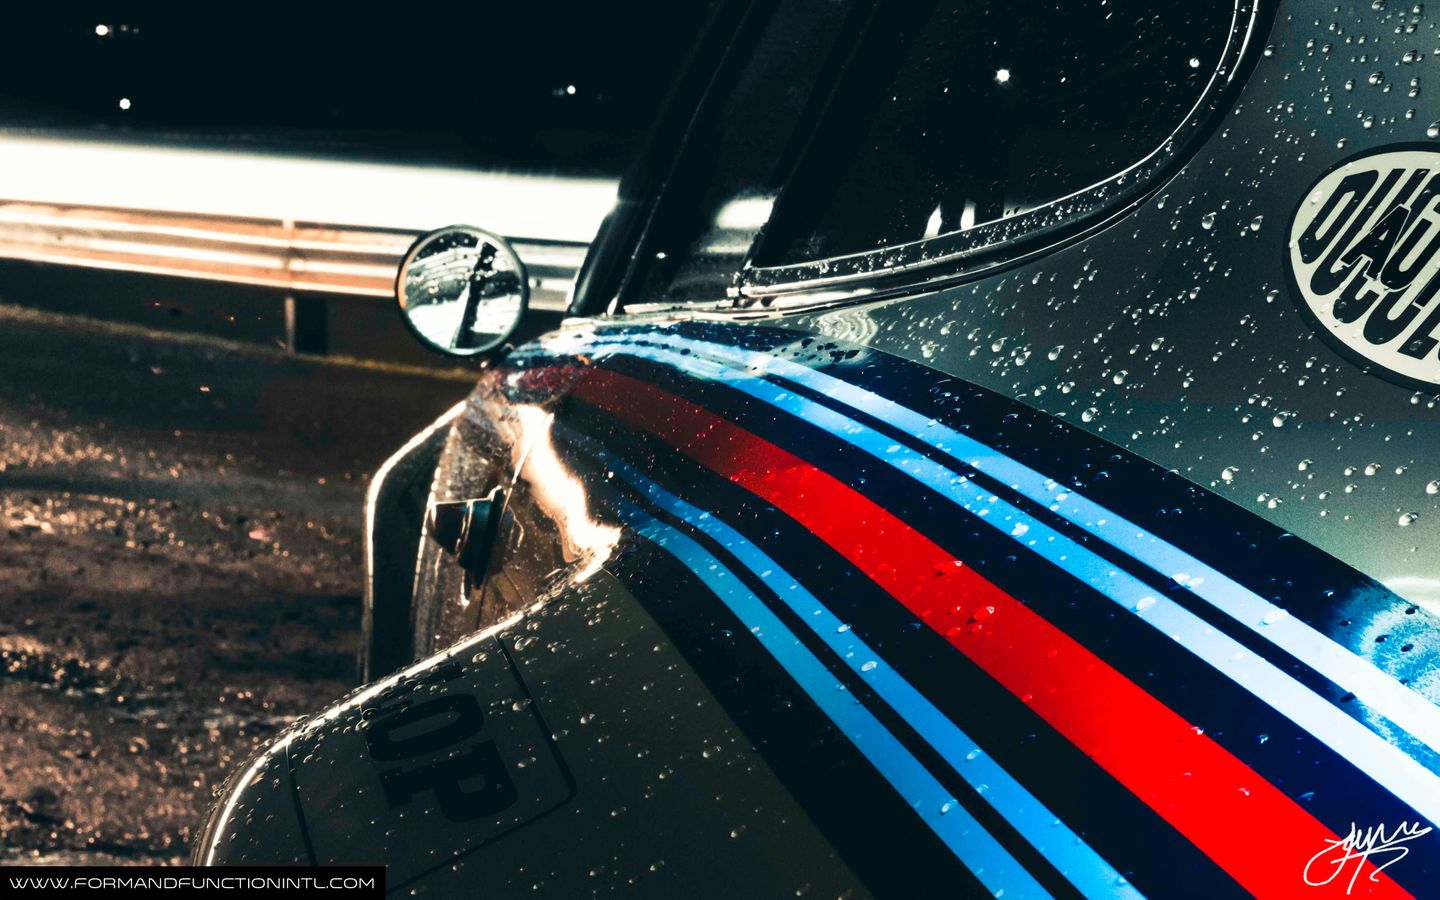 Wallpaper Android Motorsport: This Gorgeous Martini Racing Porsche 911 RSR Should Be